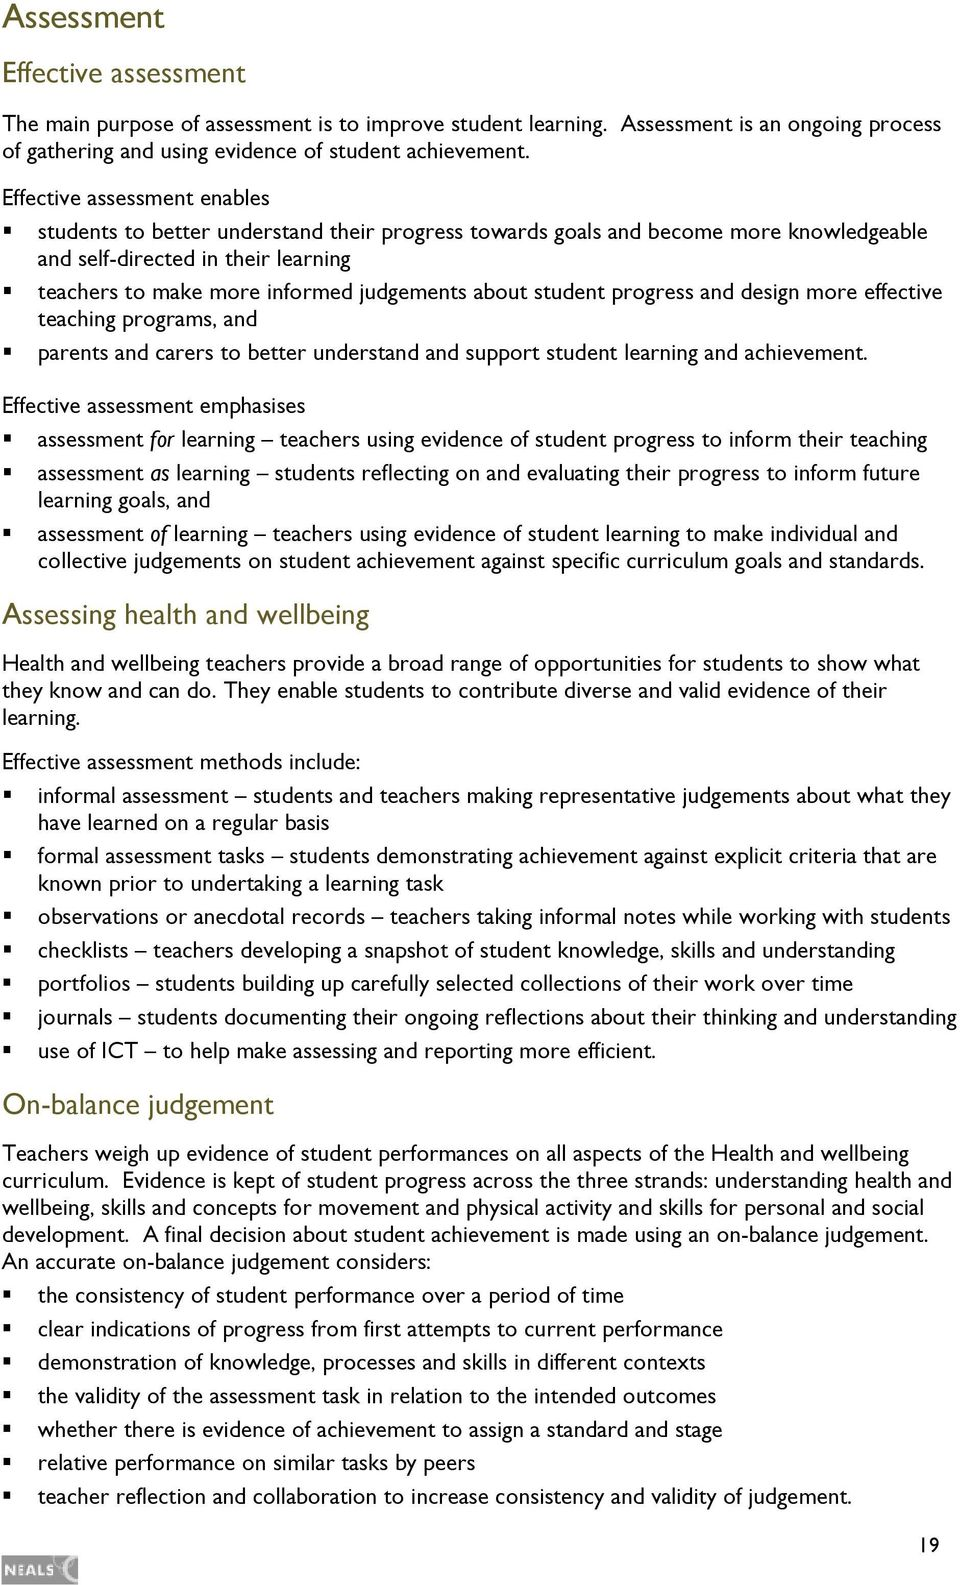 about student progress and design more effective teaching programs, and parents and carers to better understand and support student learning and achievement.